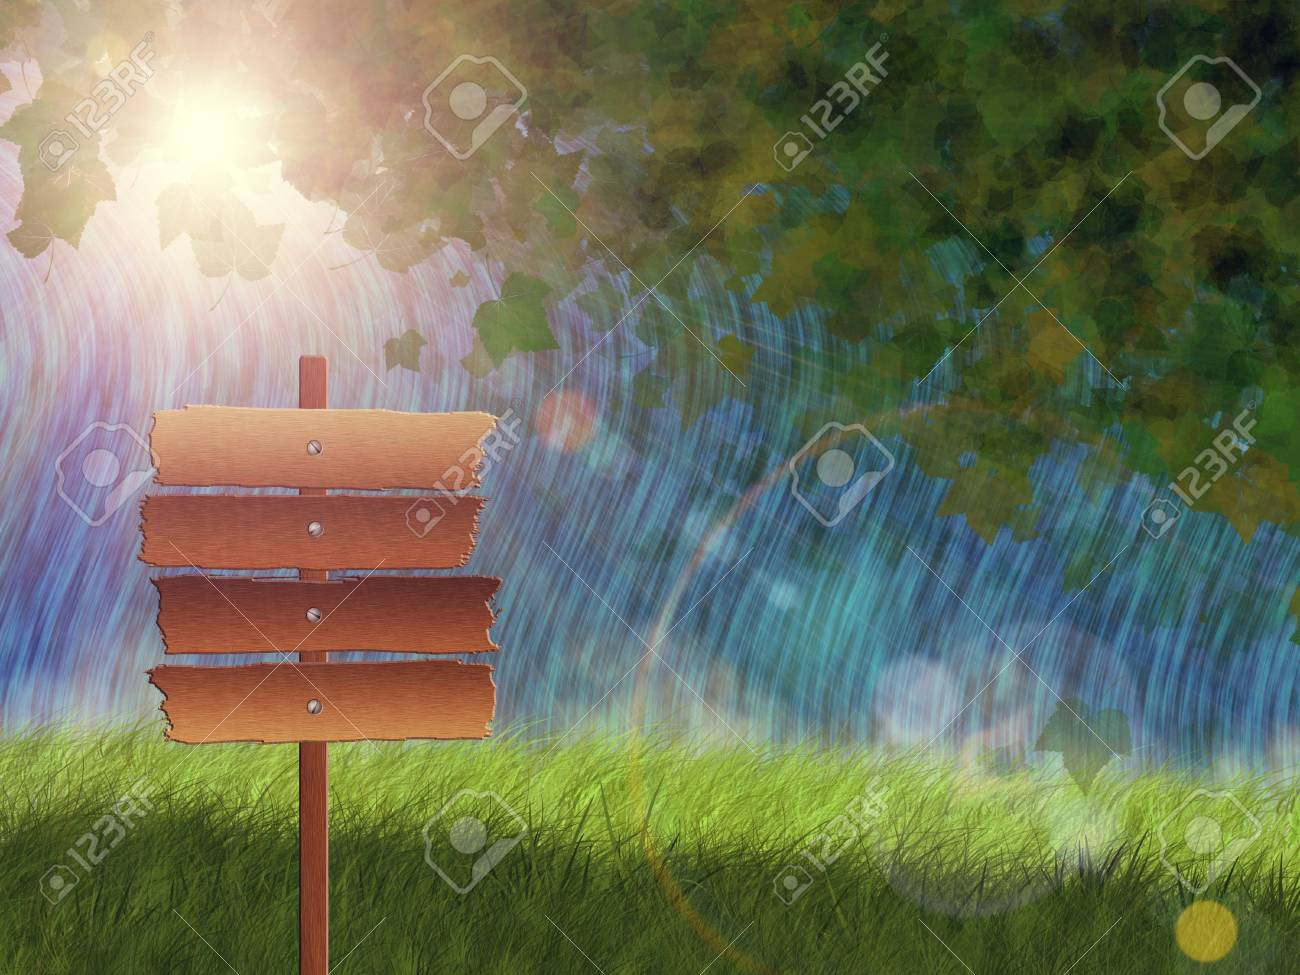 Rapid flows background with green grass, falling leaves and wood sign. Stock Photo - 18460148